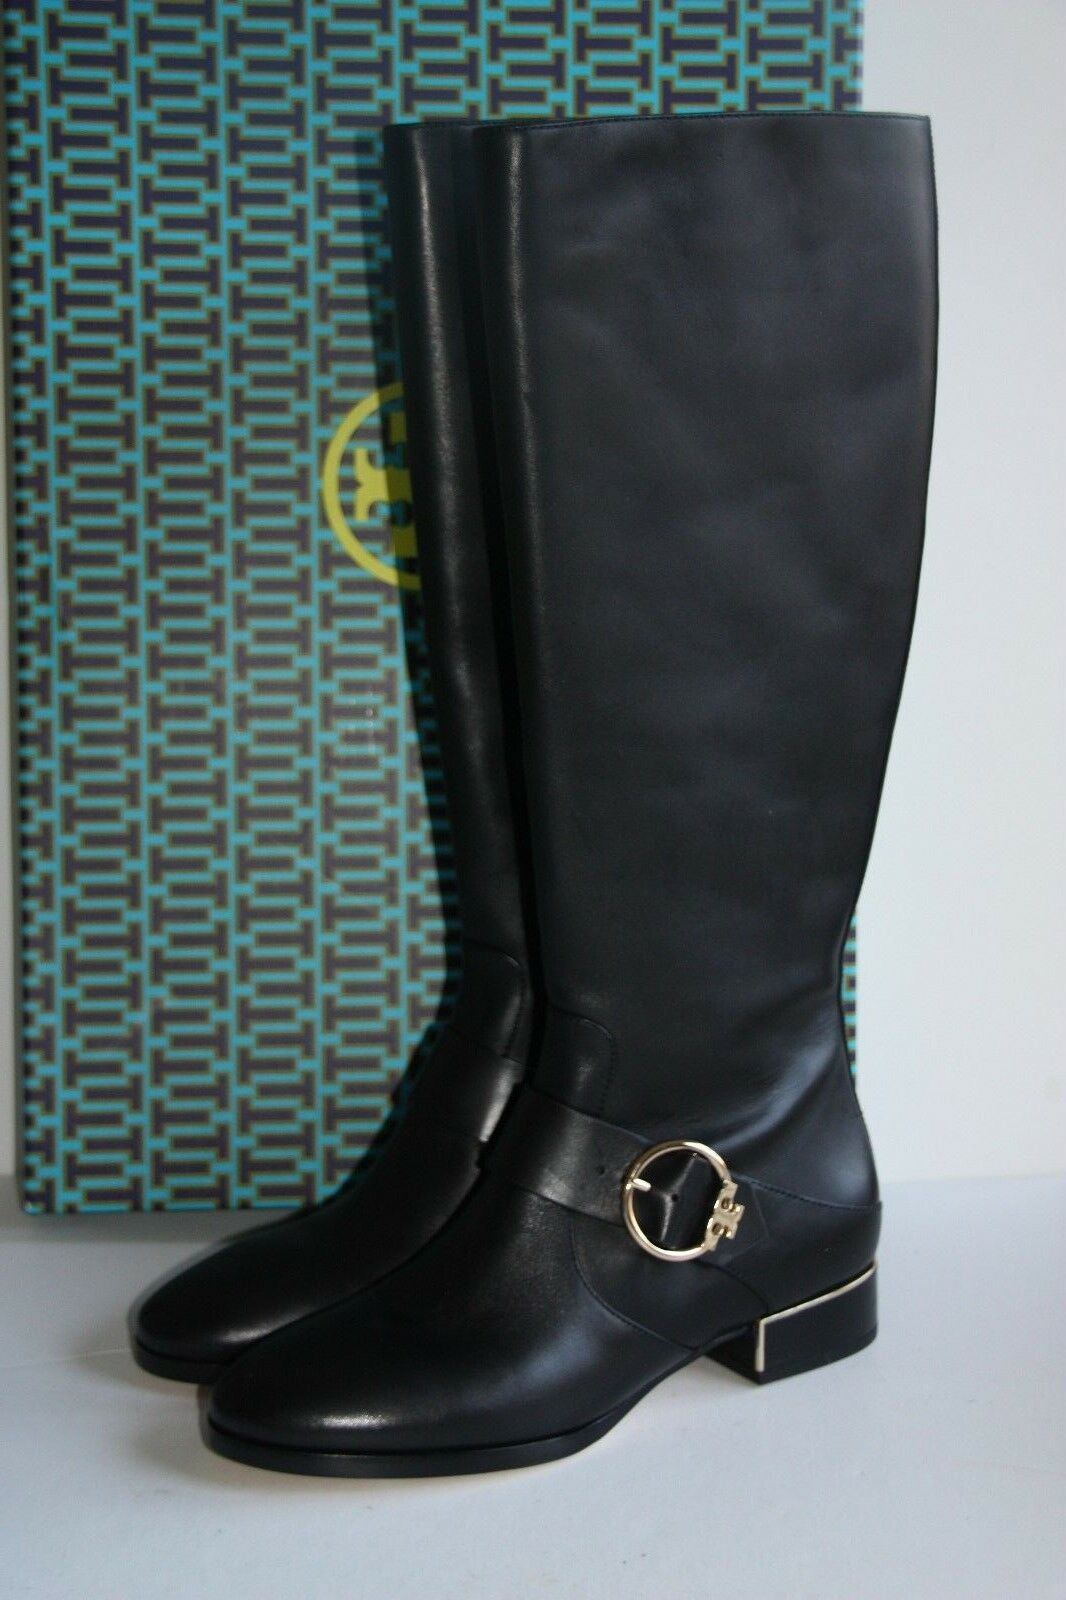 498 NEW Tory Burch SOFIA Black Leather Buckled Tall Riding Boots 7 / 37